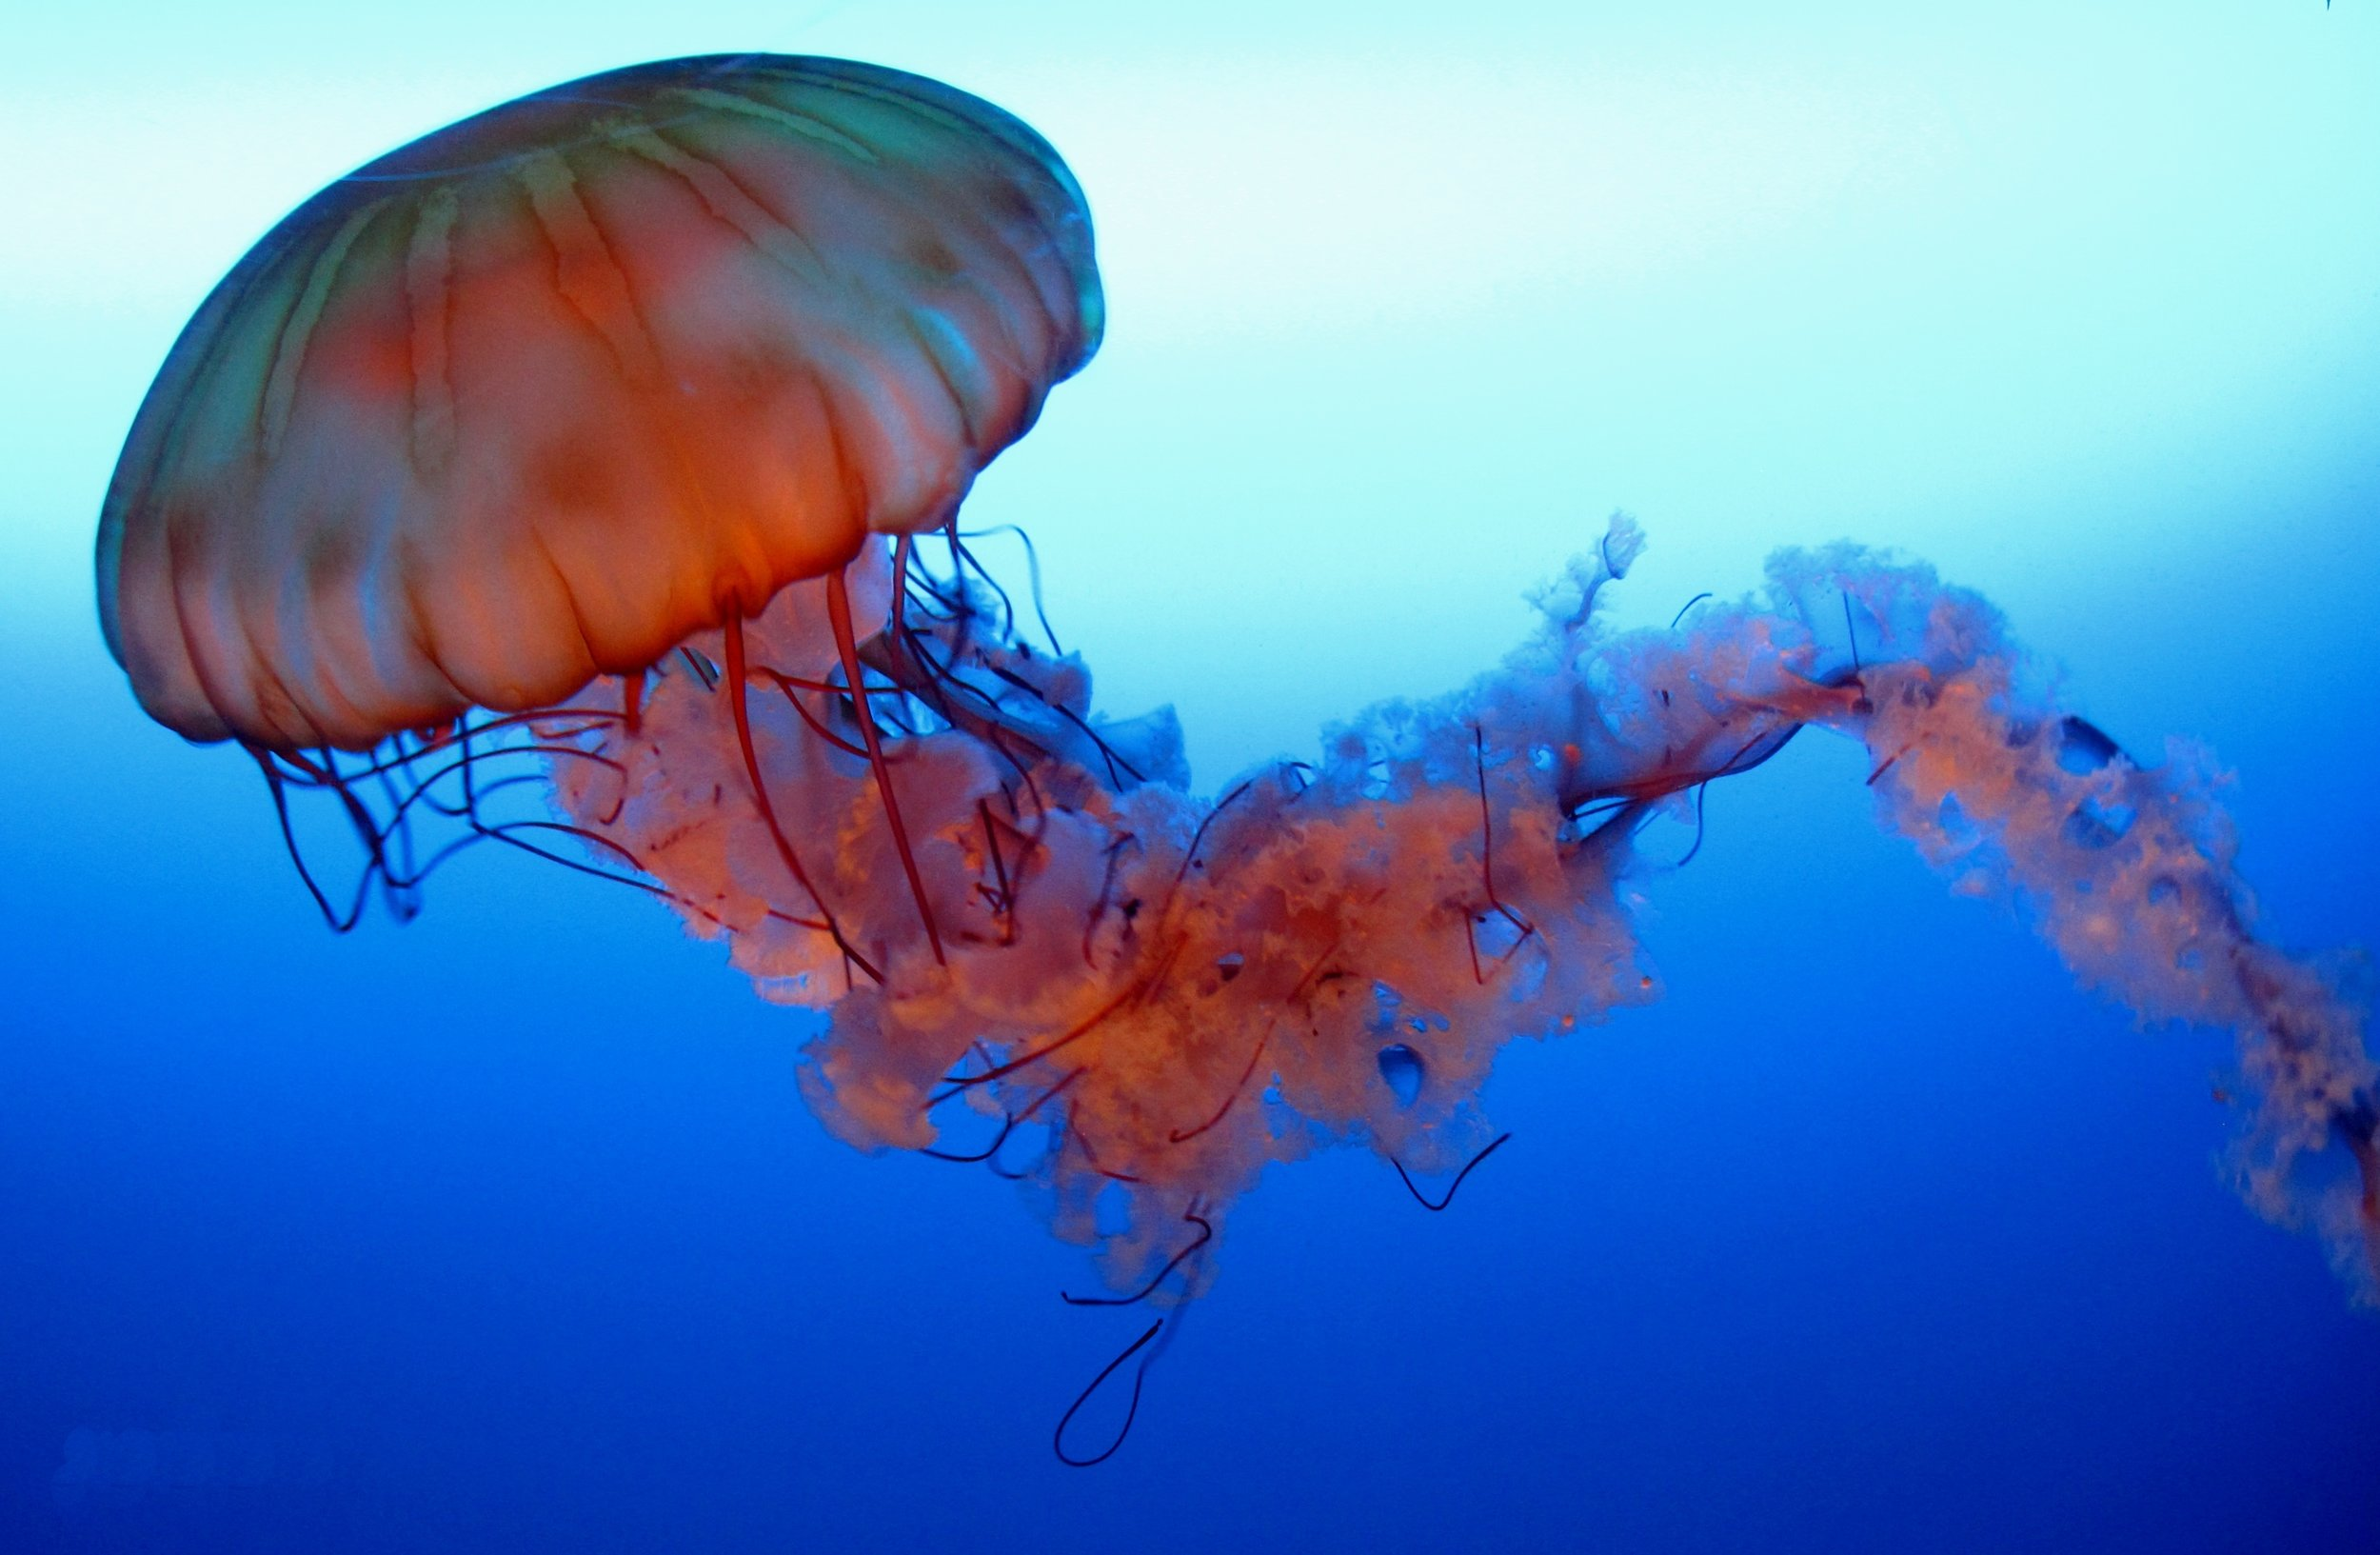 Pacific+Sea+Nettle+Jellyfish.jpg